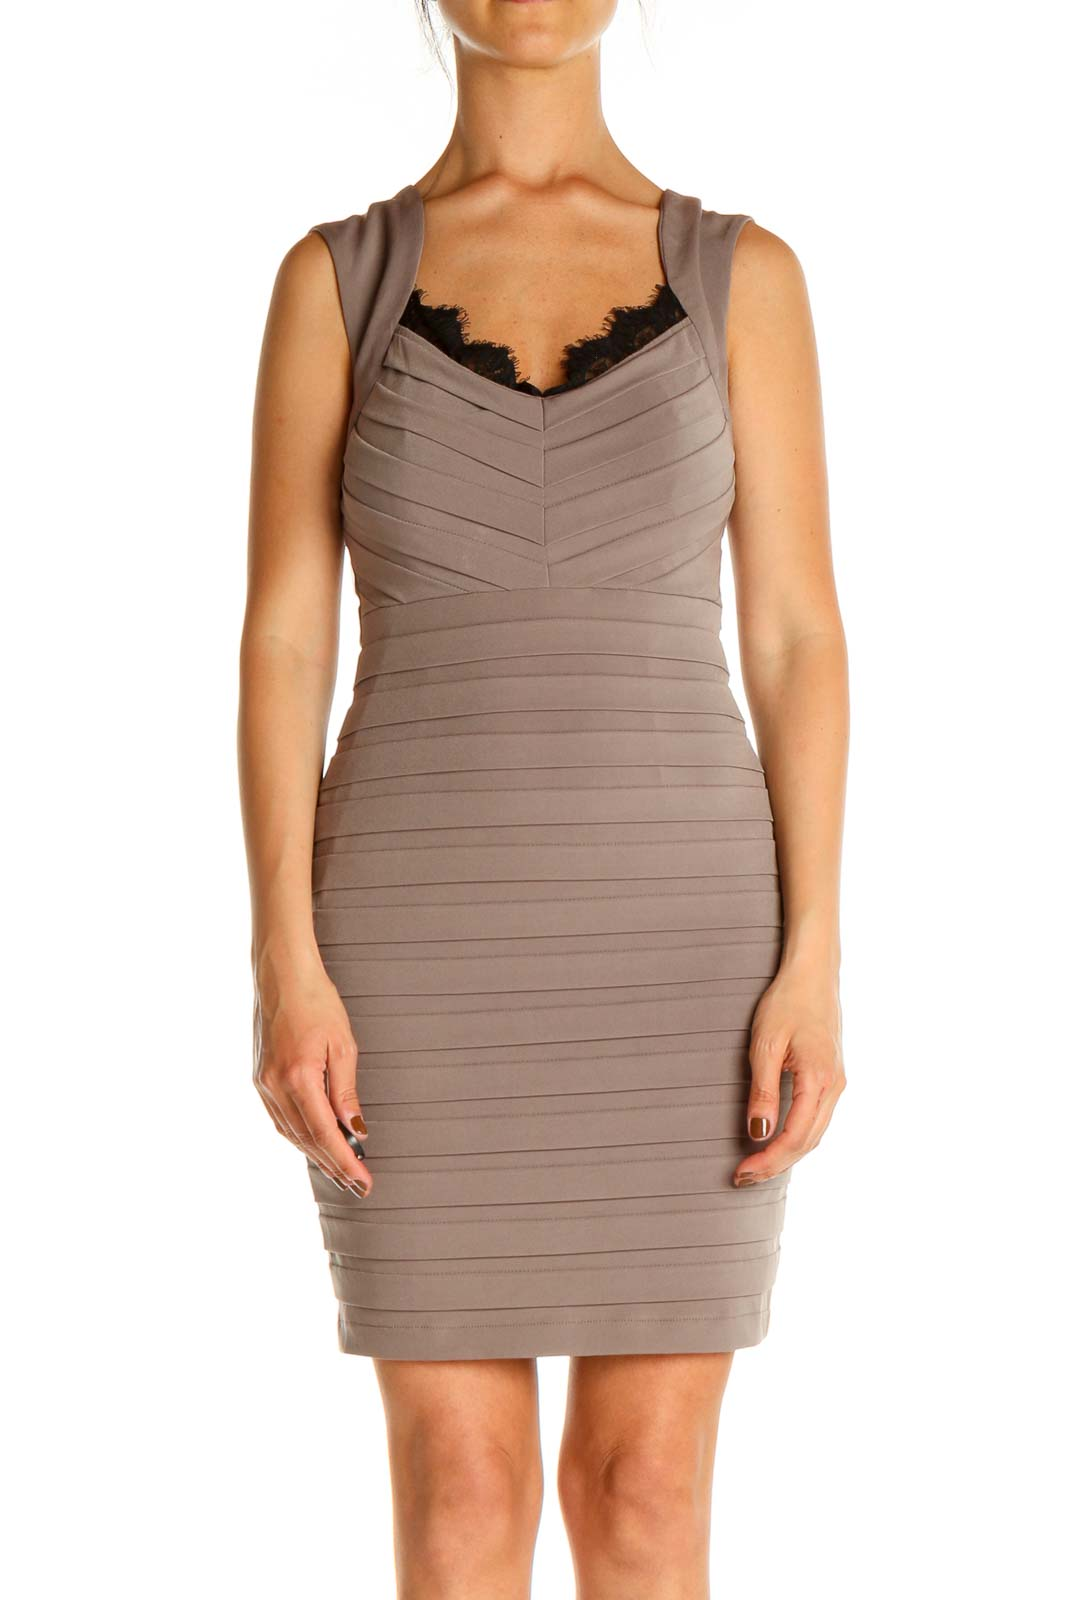 Beige Lace Work Sheath Dress Front